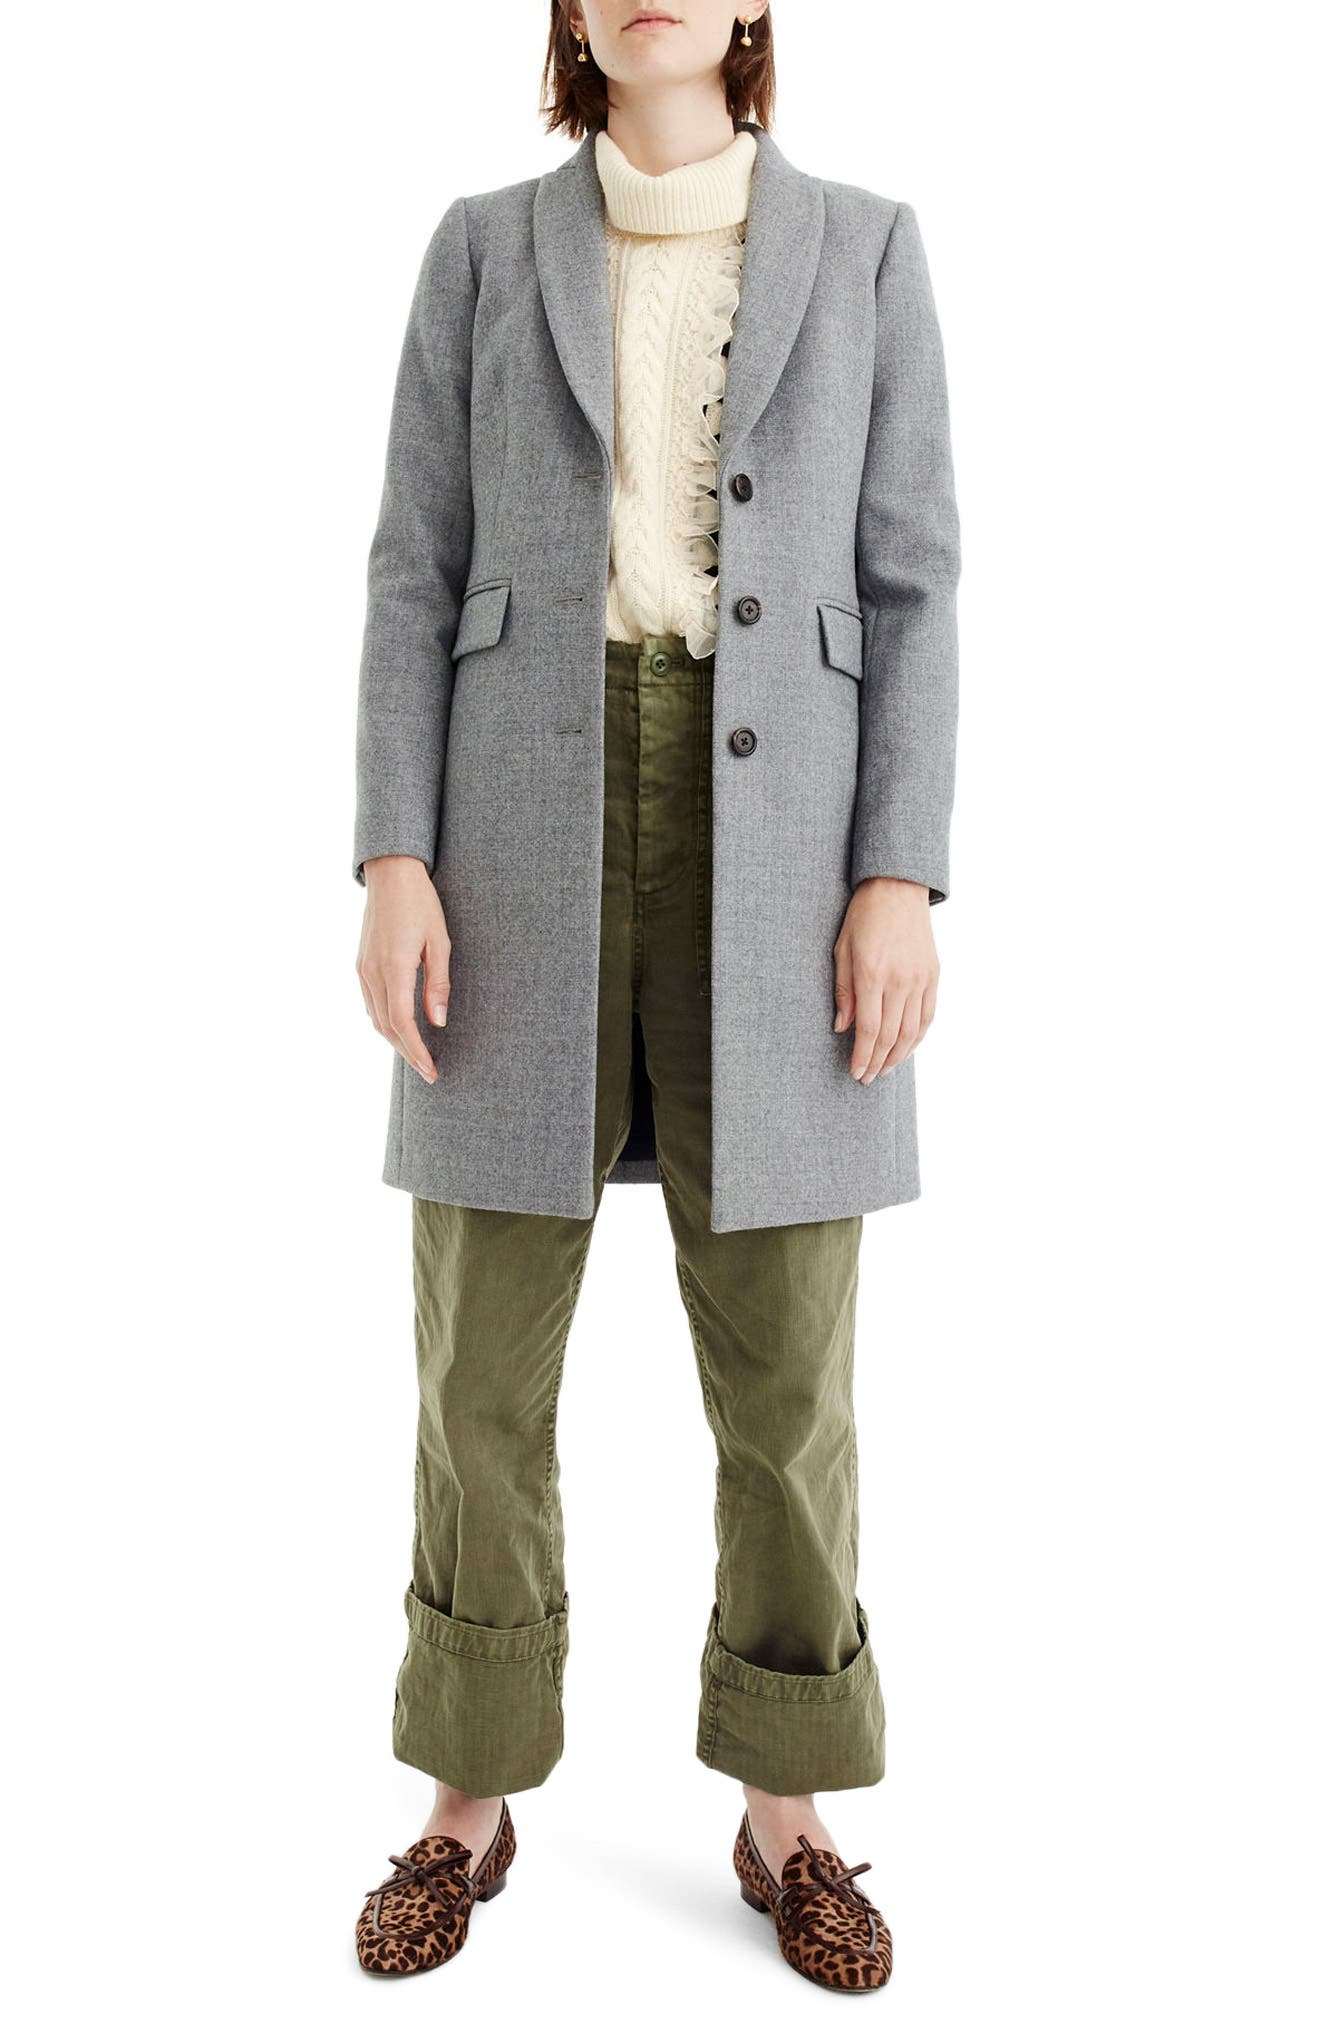 Alternate Image 1 Selected - J.Crew Eniko Wool Topcoat